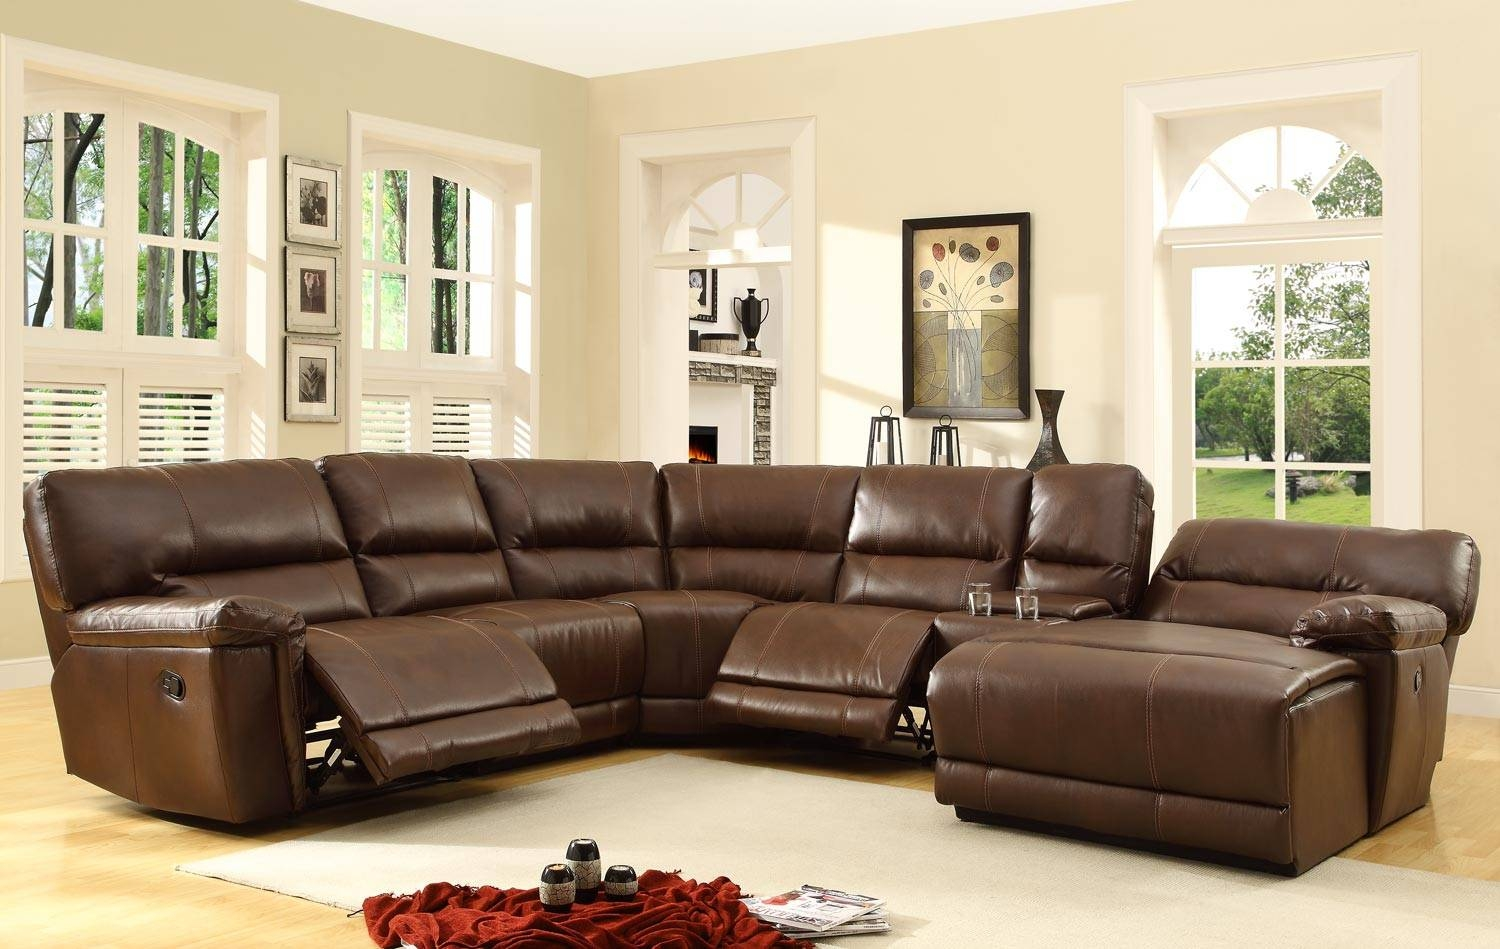 Homelegance Blythe Sectional Sofa Set - Brown - Bonded Leather within Homelegance Sofas (Image 4 of 15)